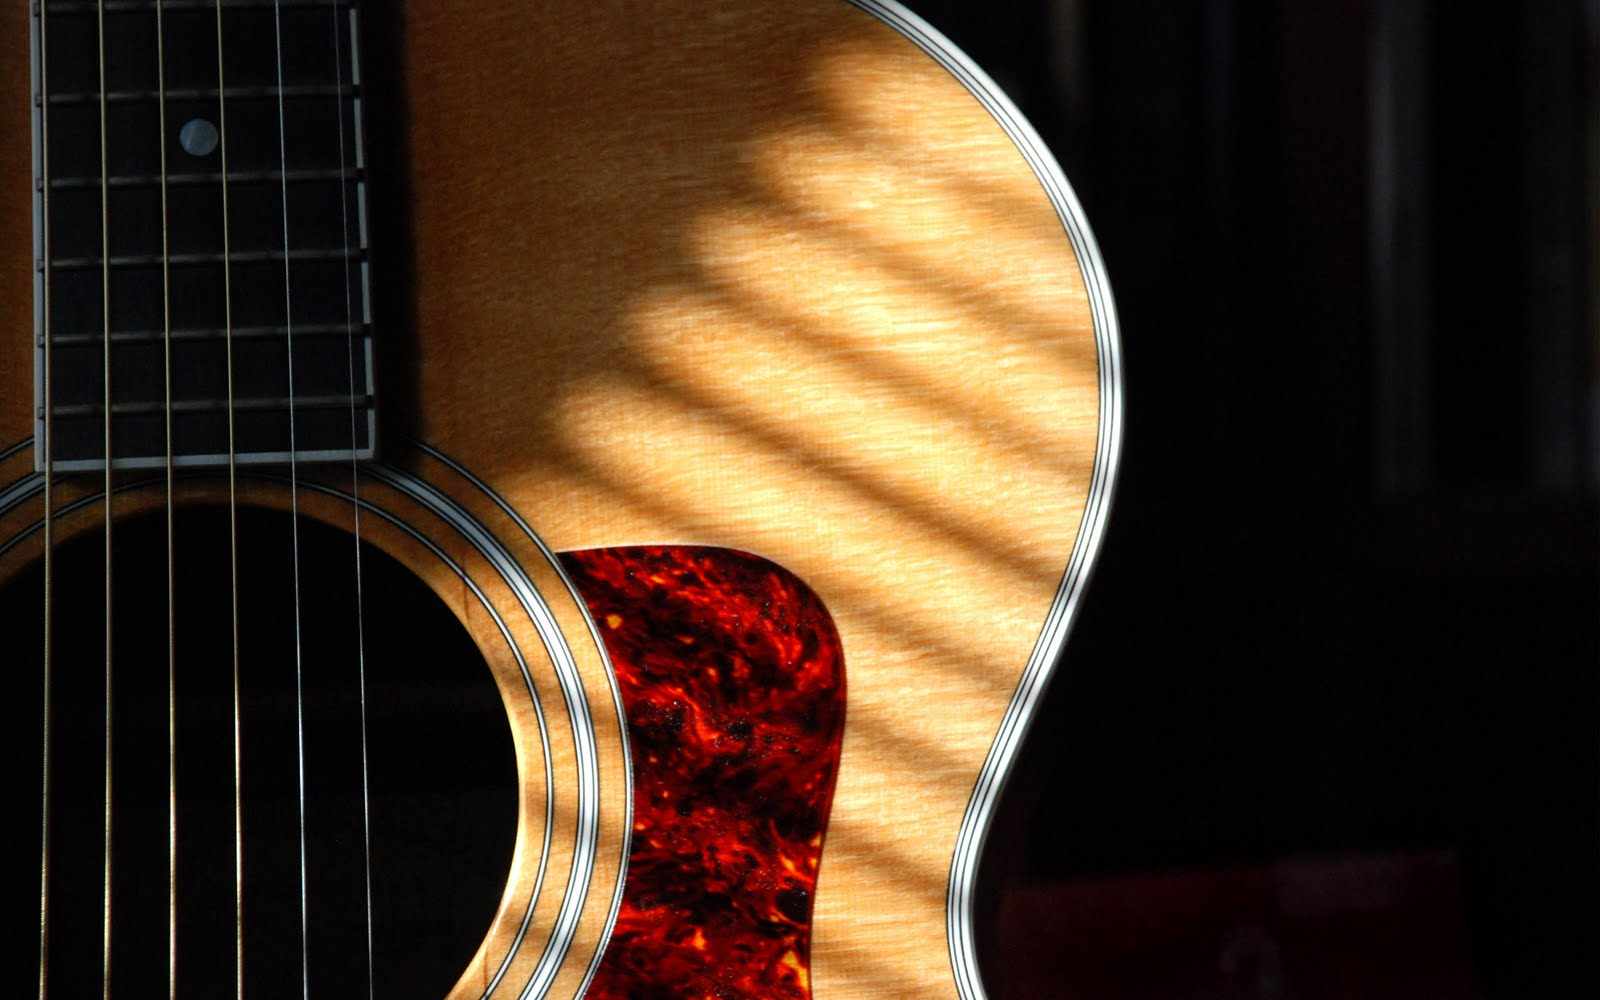 Guitar Wallpaper   Acoustic Guitar In Sunlight   Widescreen HD 1600x1000